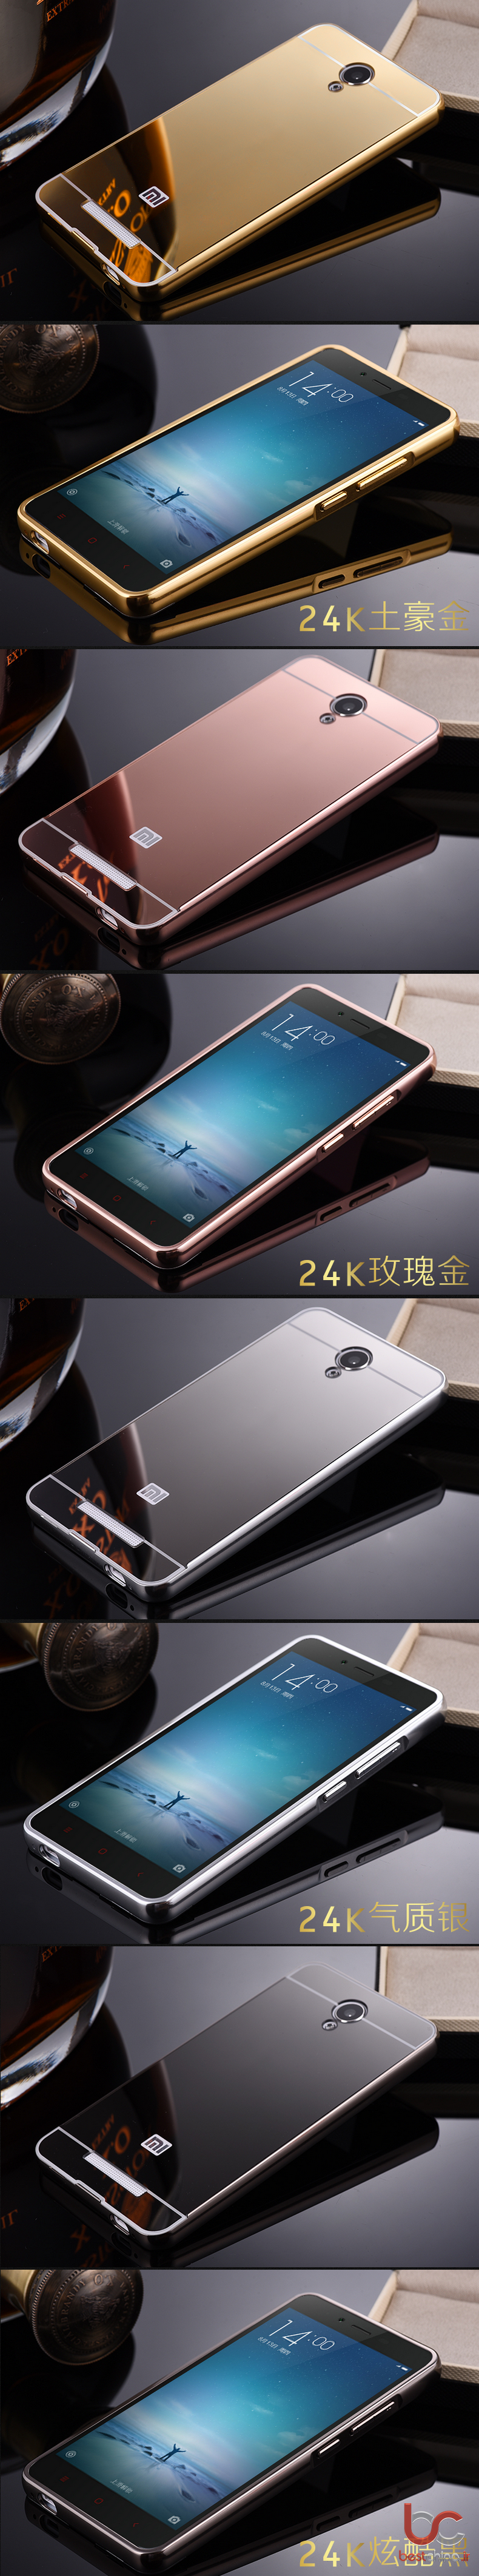 xiaomi-redmi-note-2-aluminium-back-cover-2